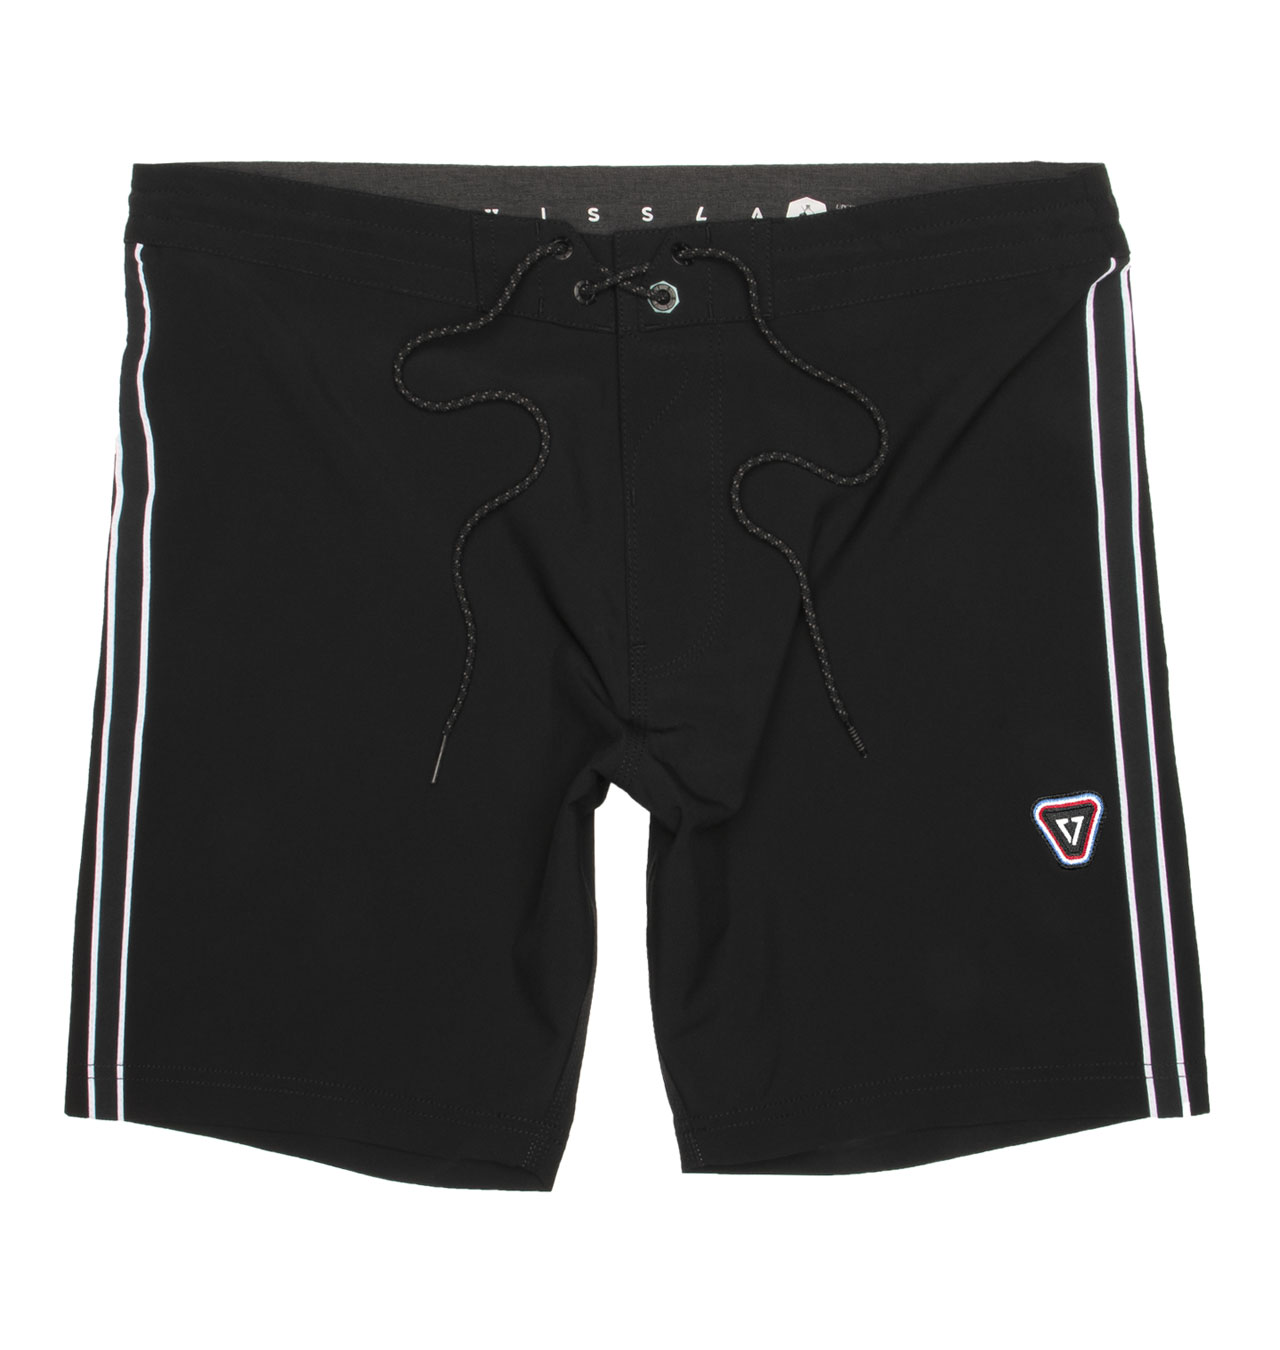 Vissla---The-Trip-17.5-Boardshort---Black-1